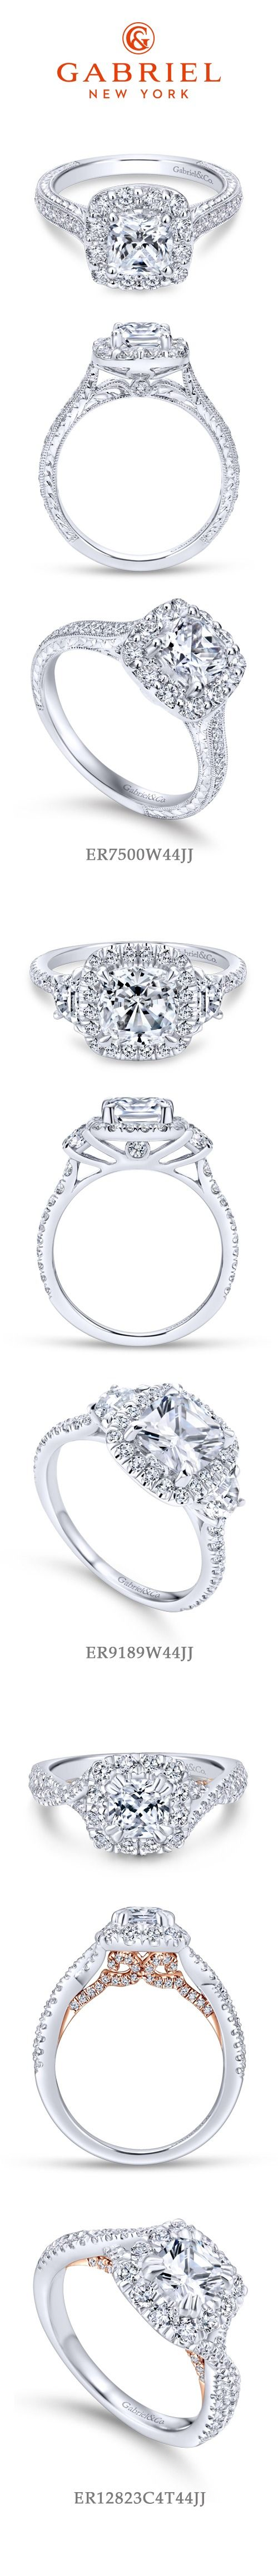 Gabriel NY - Preferred Fine Jewelry and Bridal Brand. Our Top 3 Cushion Cut Engagement Rings! 1) Vintage 14k White Gold Cushion Cut Halo 2) 14k White Gold Cushion Cut 3 Stones halo 3) 14k White Gold/Rose Gold Cushion Cut Halo